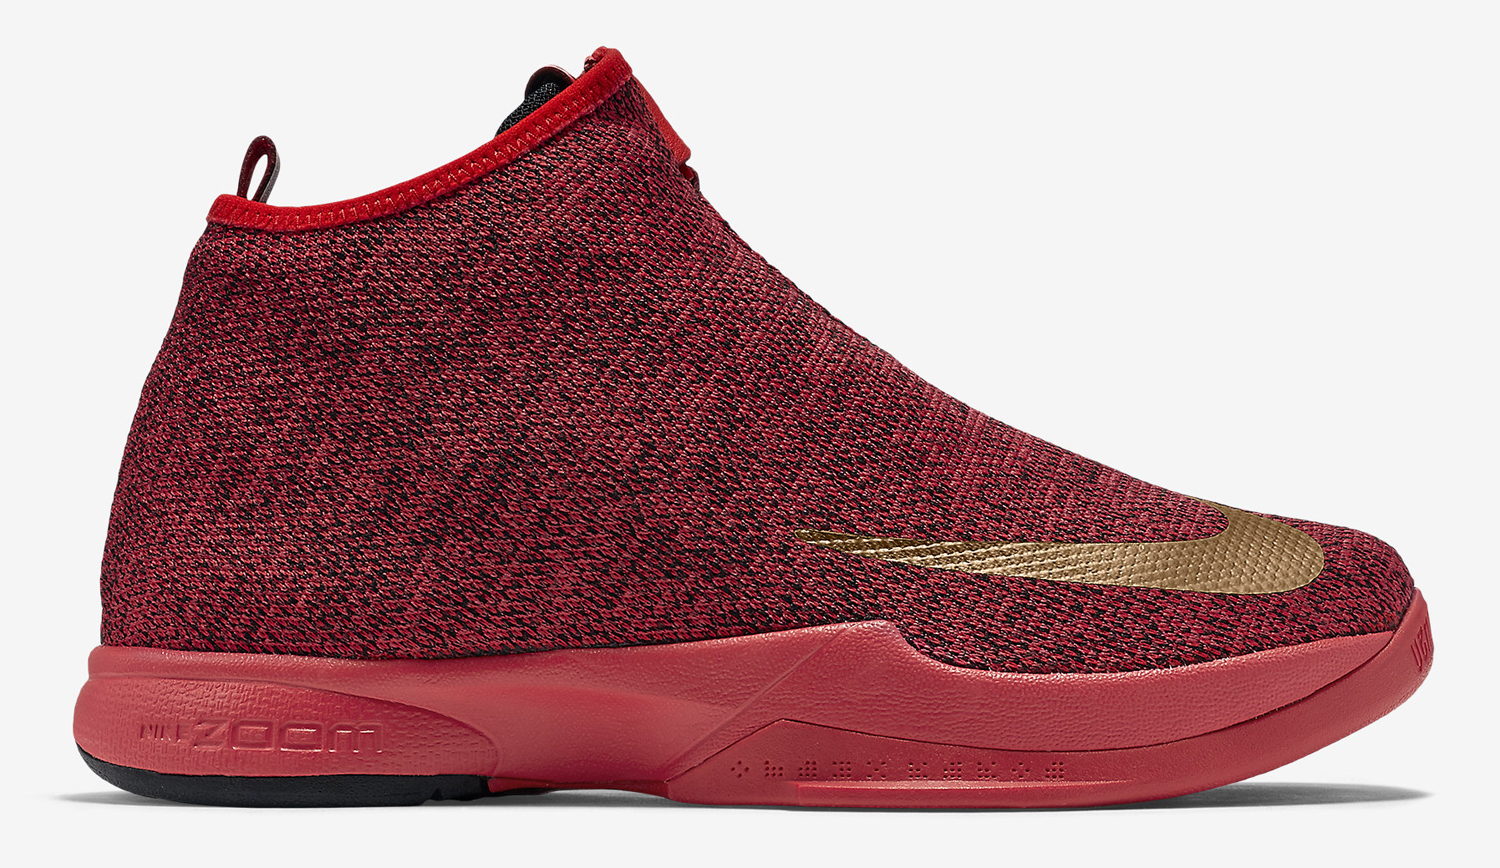 cc0bf19c3921 authentic nike zoom kobe icon mens shoes university red metallic gold 6d452  7fc7b  coupon code for nike zoom kobe icon red 7984a e2503